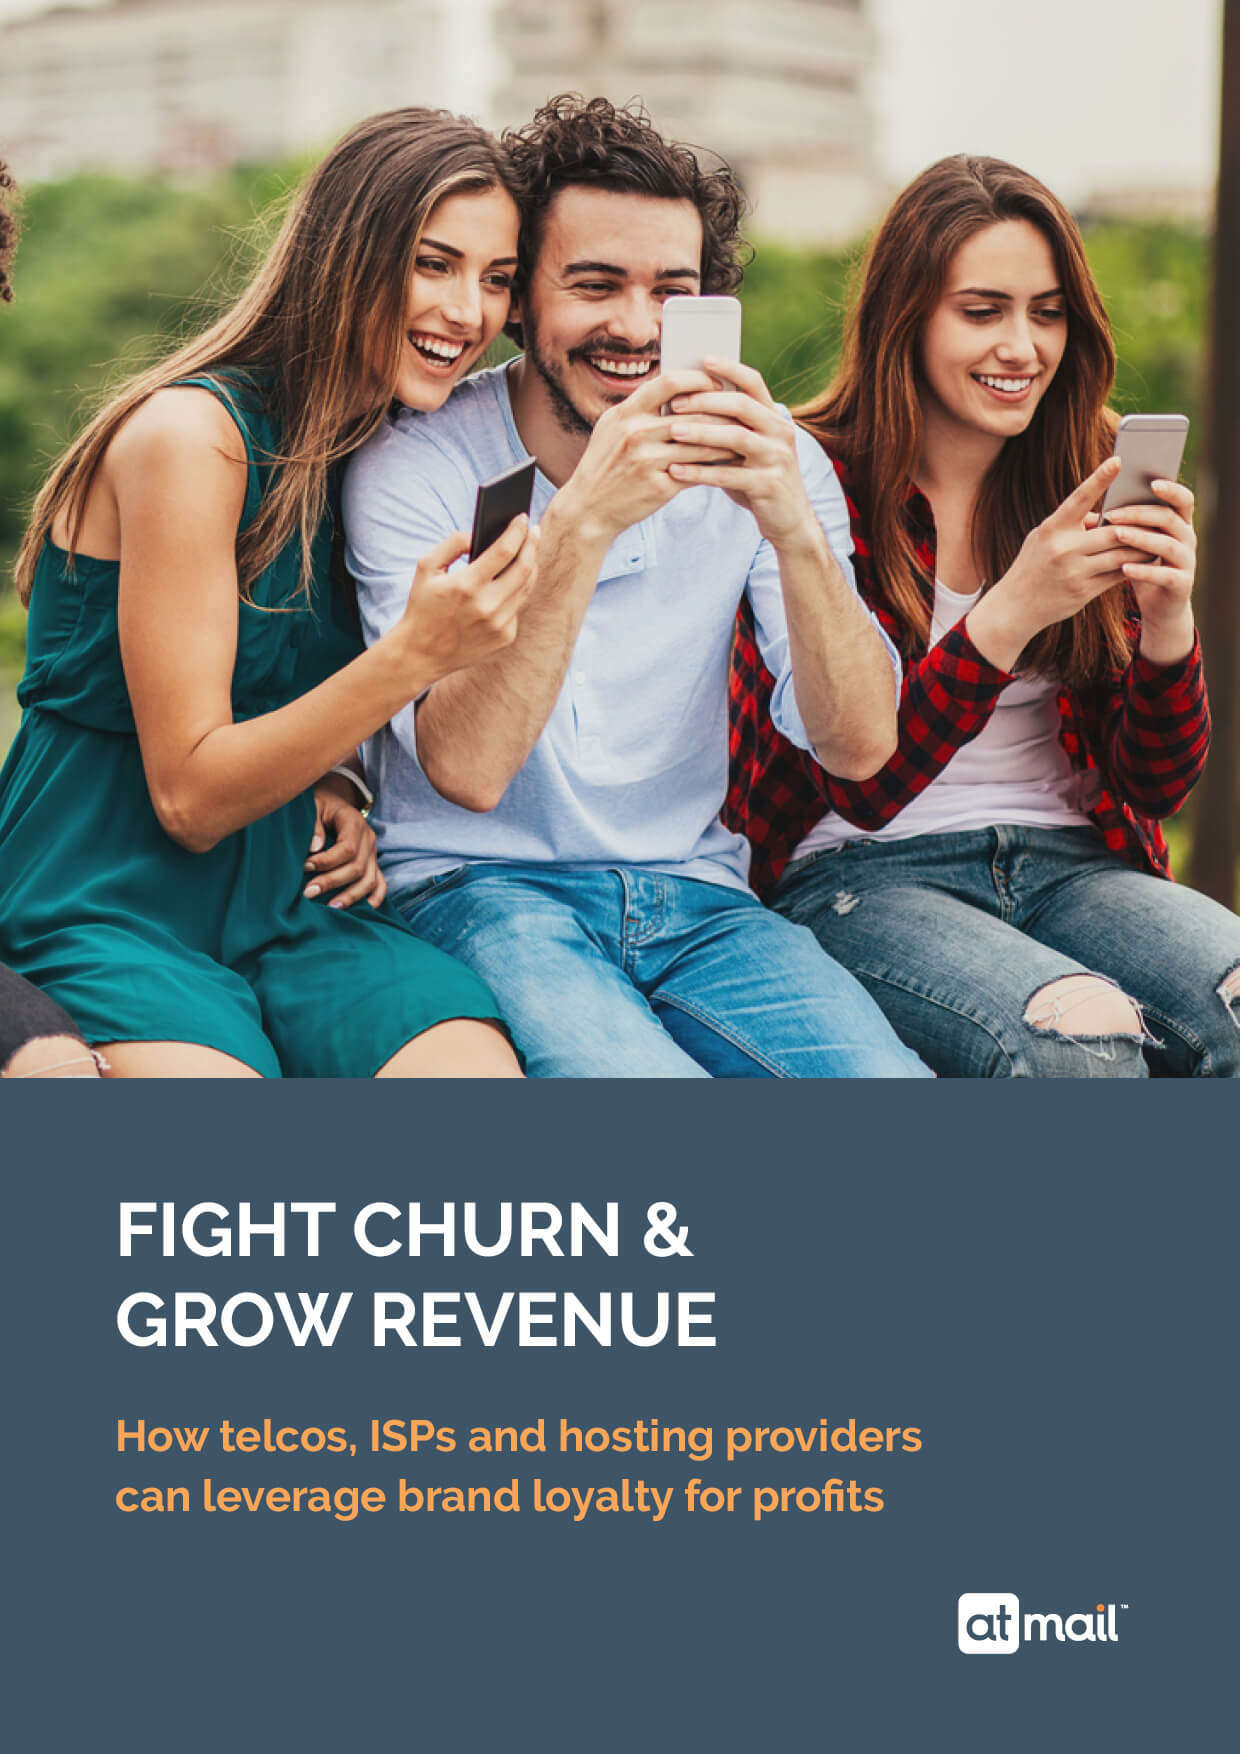 Fight Churn & Grow Revenue - atmail white paper - email experts